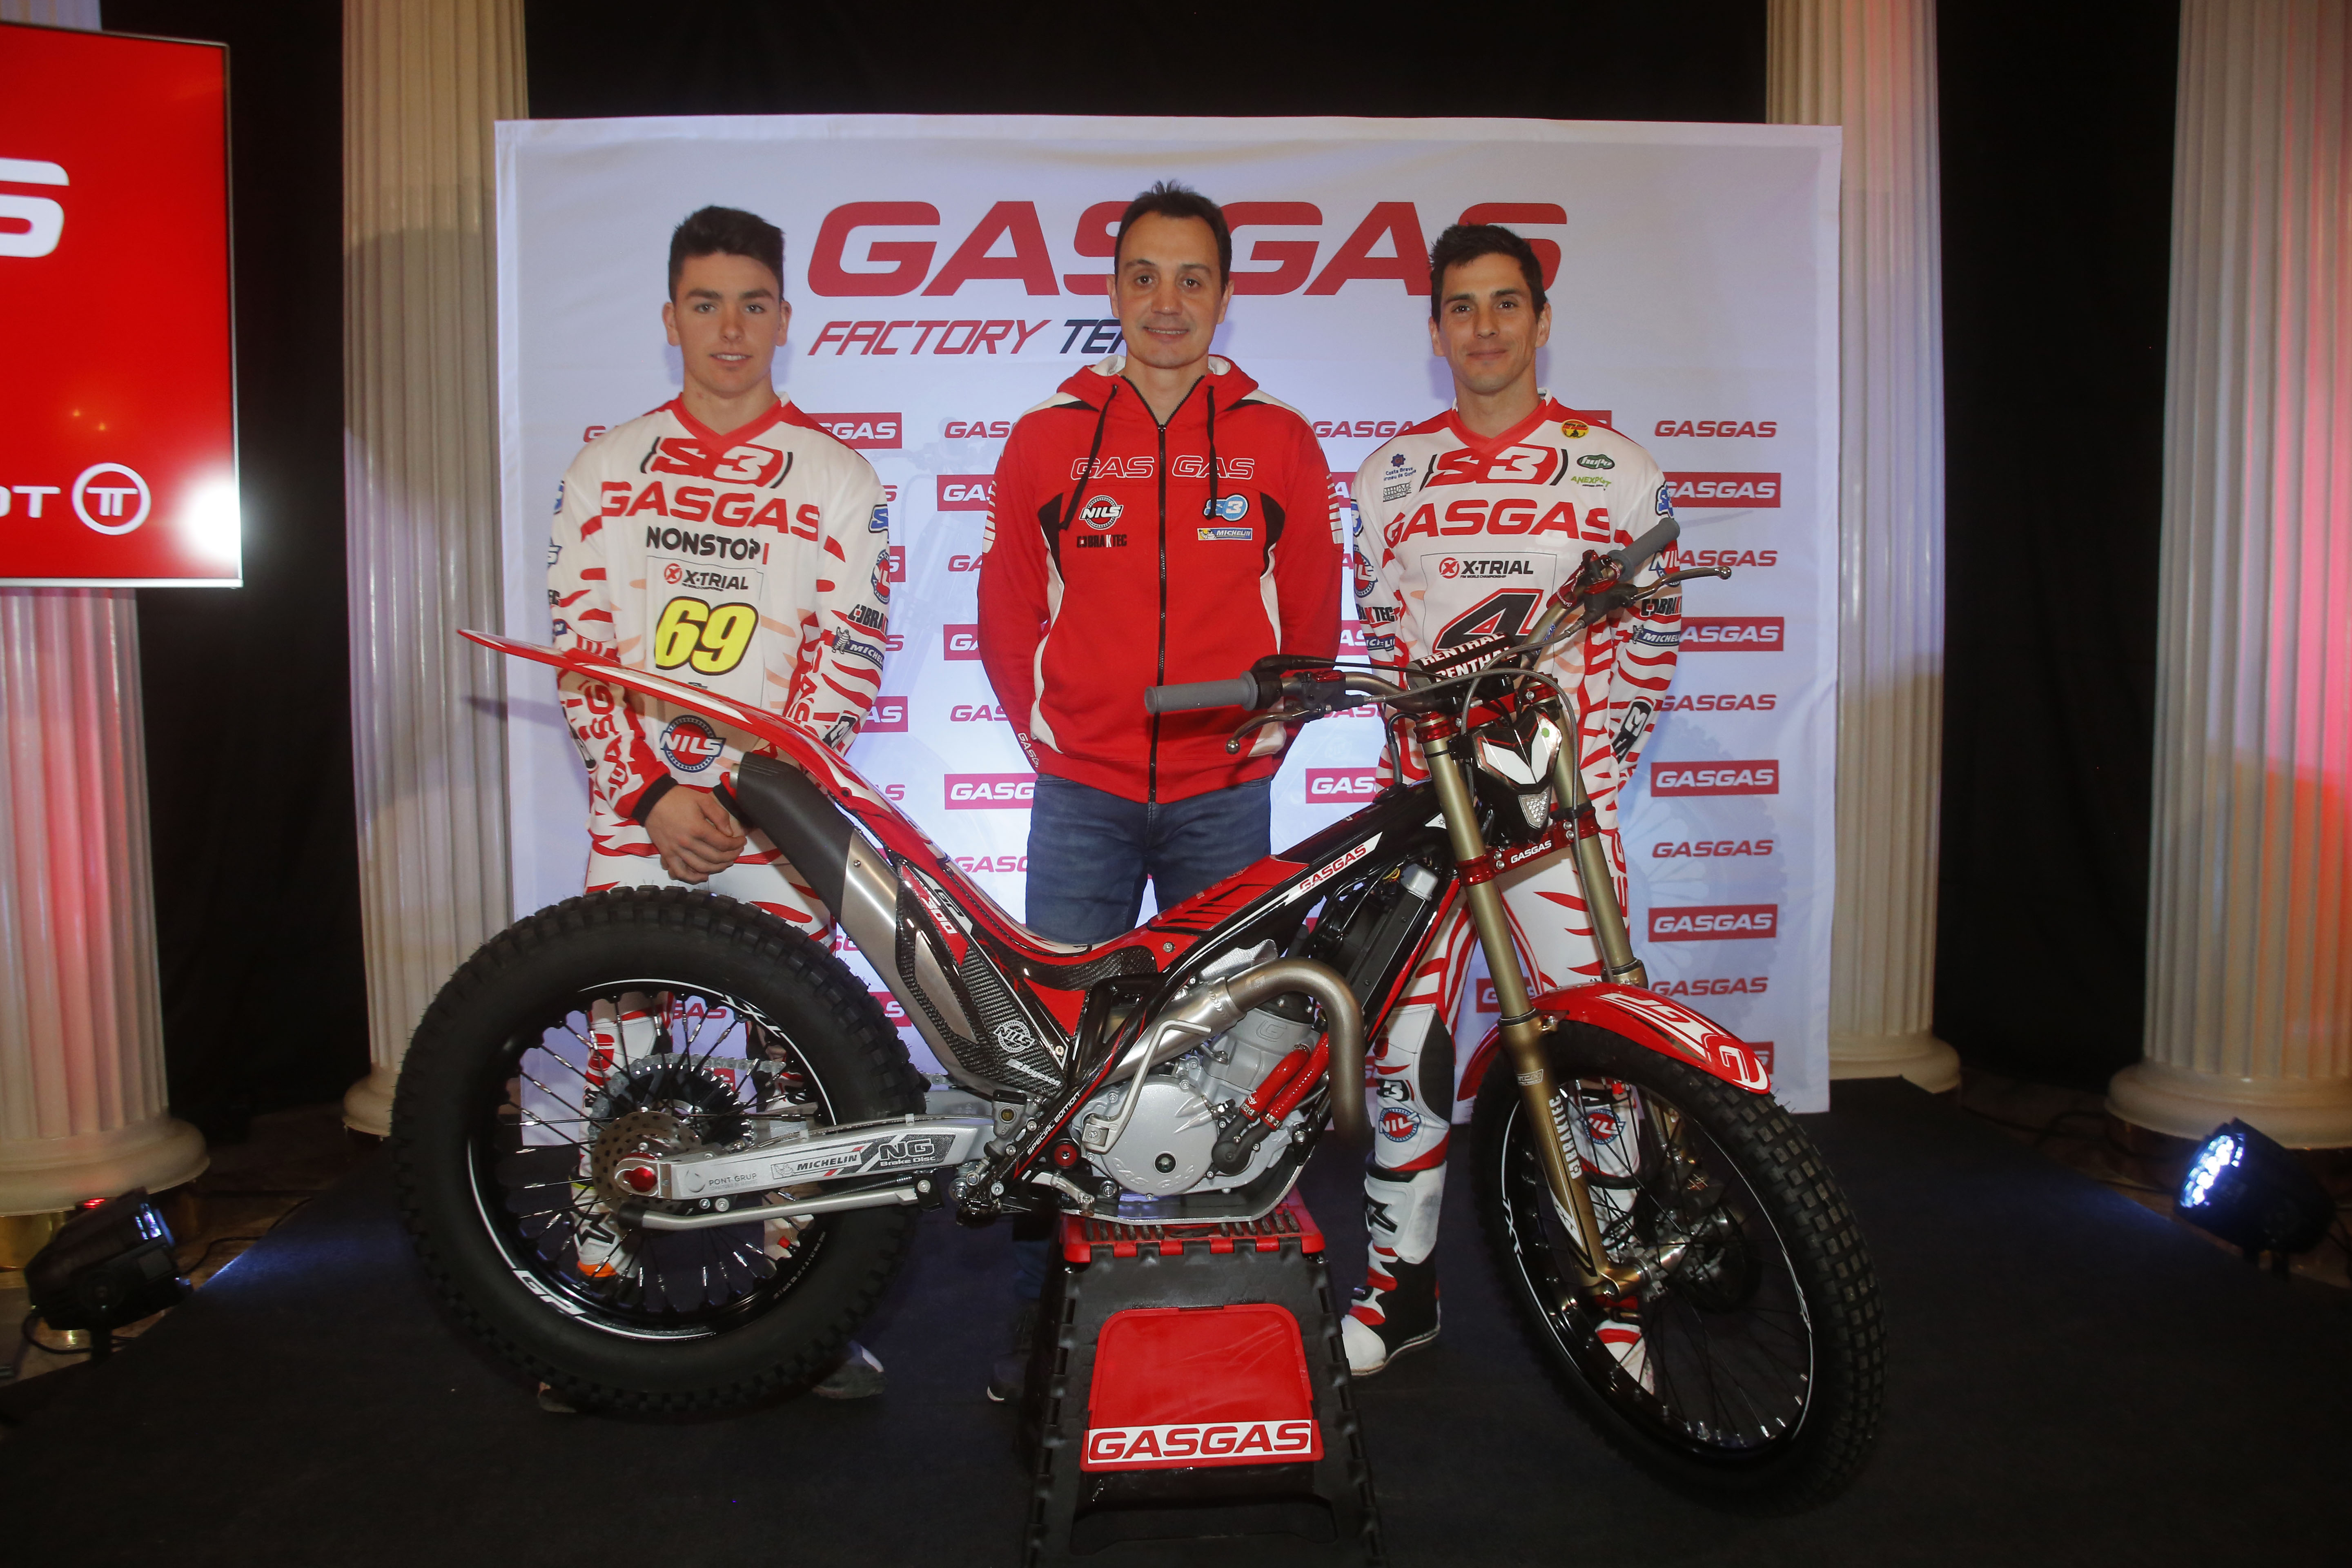 Torrot presents the 2018 GasGas Trial Factory Team with the addition of Jaime Busto and Jeroni Fajardo